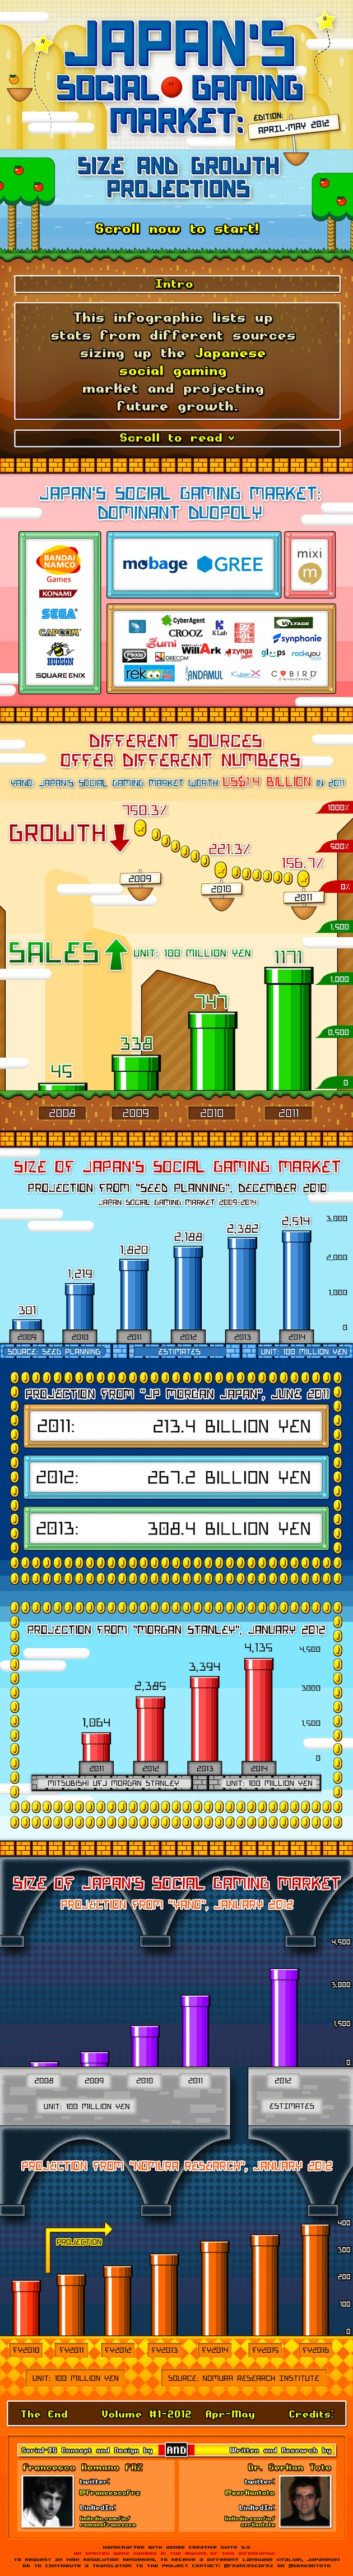 Japan Social Gaming Market, Design, Francesco Romano; Written/researched by Serkan Toto